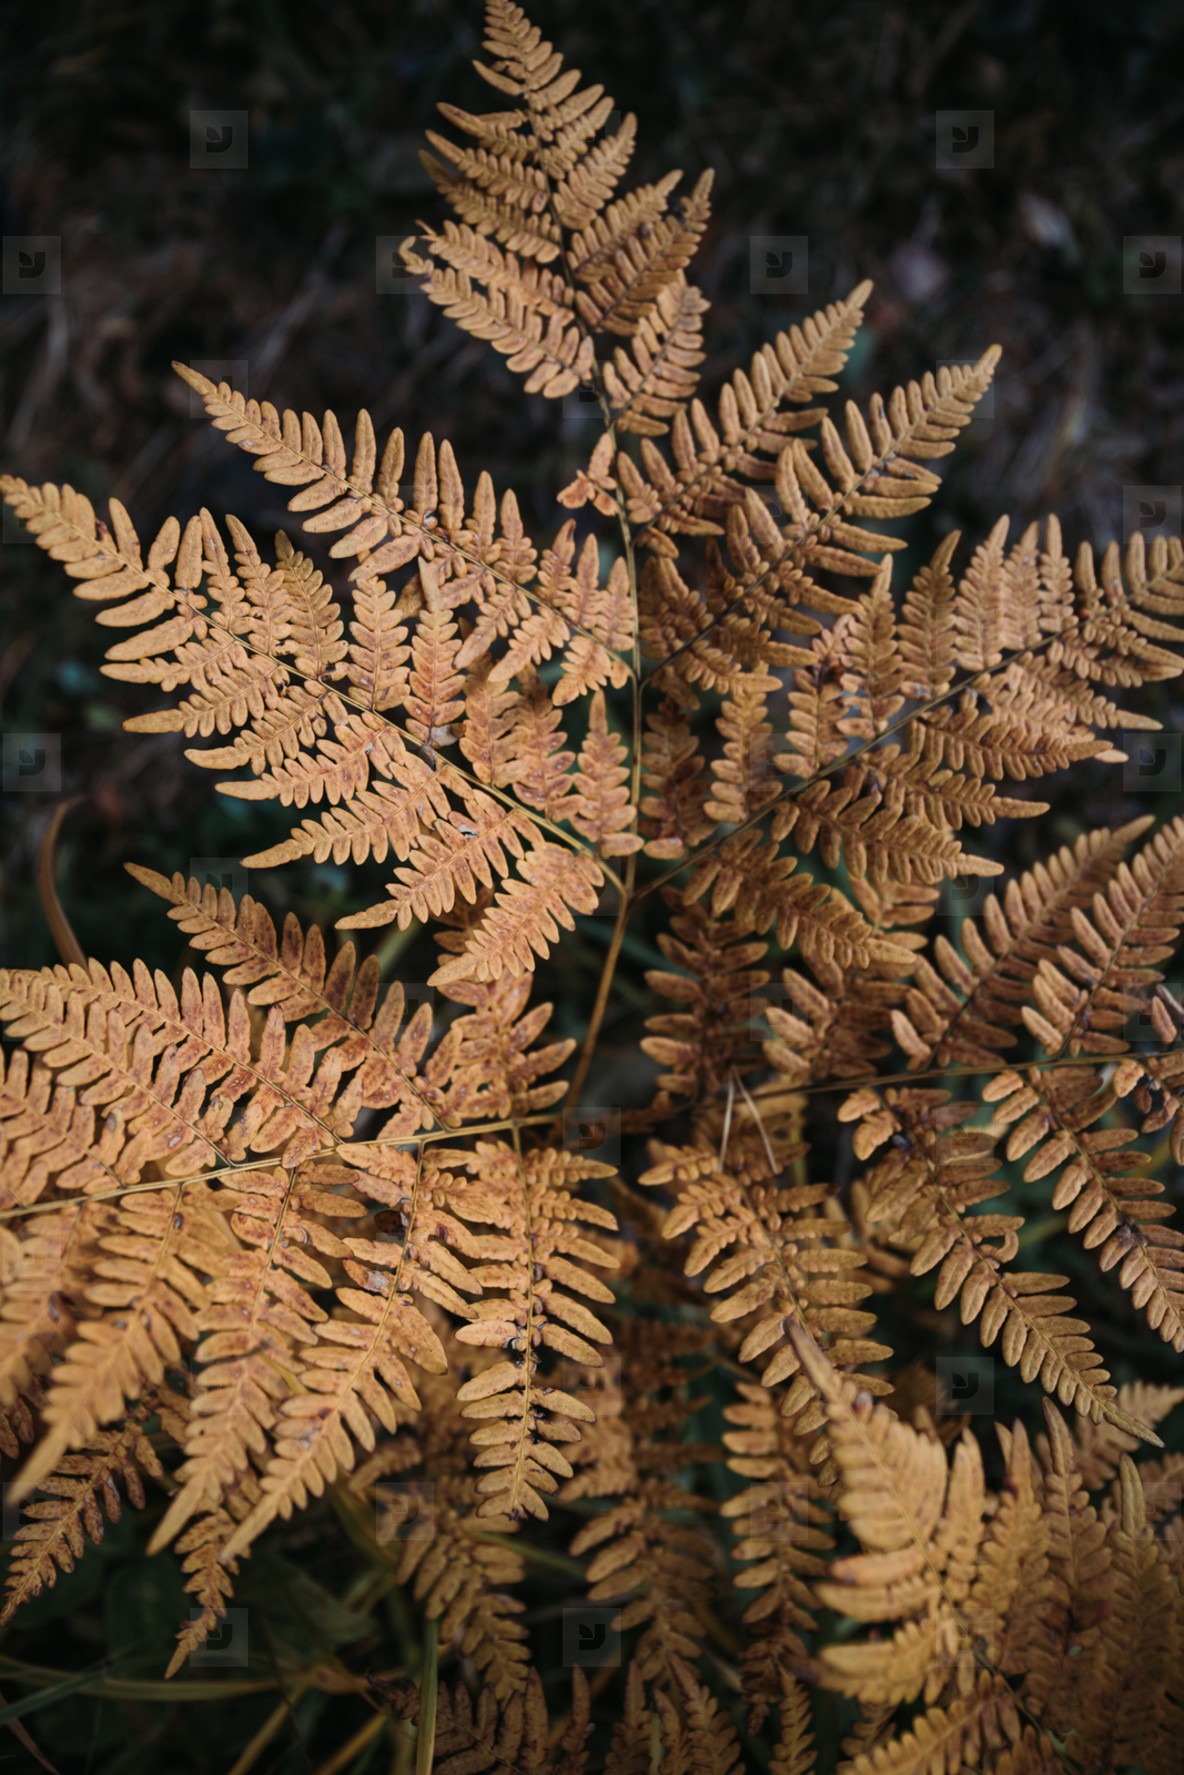 Fern branch with orange foliage in Autumn forest  Nature frame  macro photography